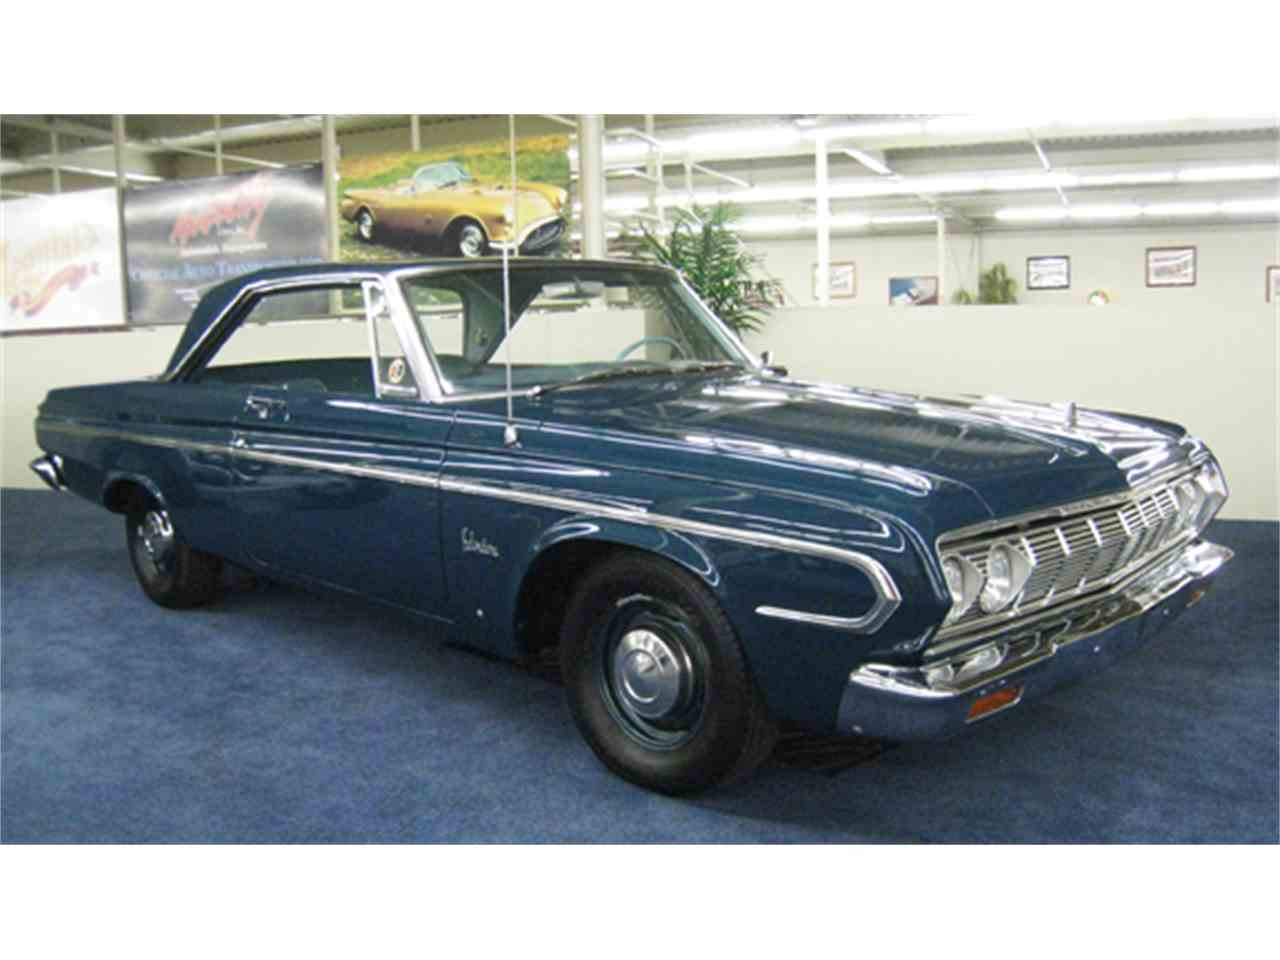 1964 Plymouth Belvedere Backgrounds, Compatible - PC, Mobile, Gadgets| 1280x960 px